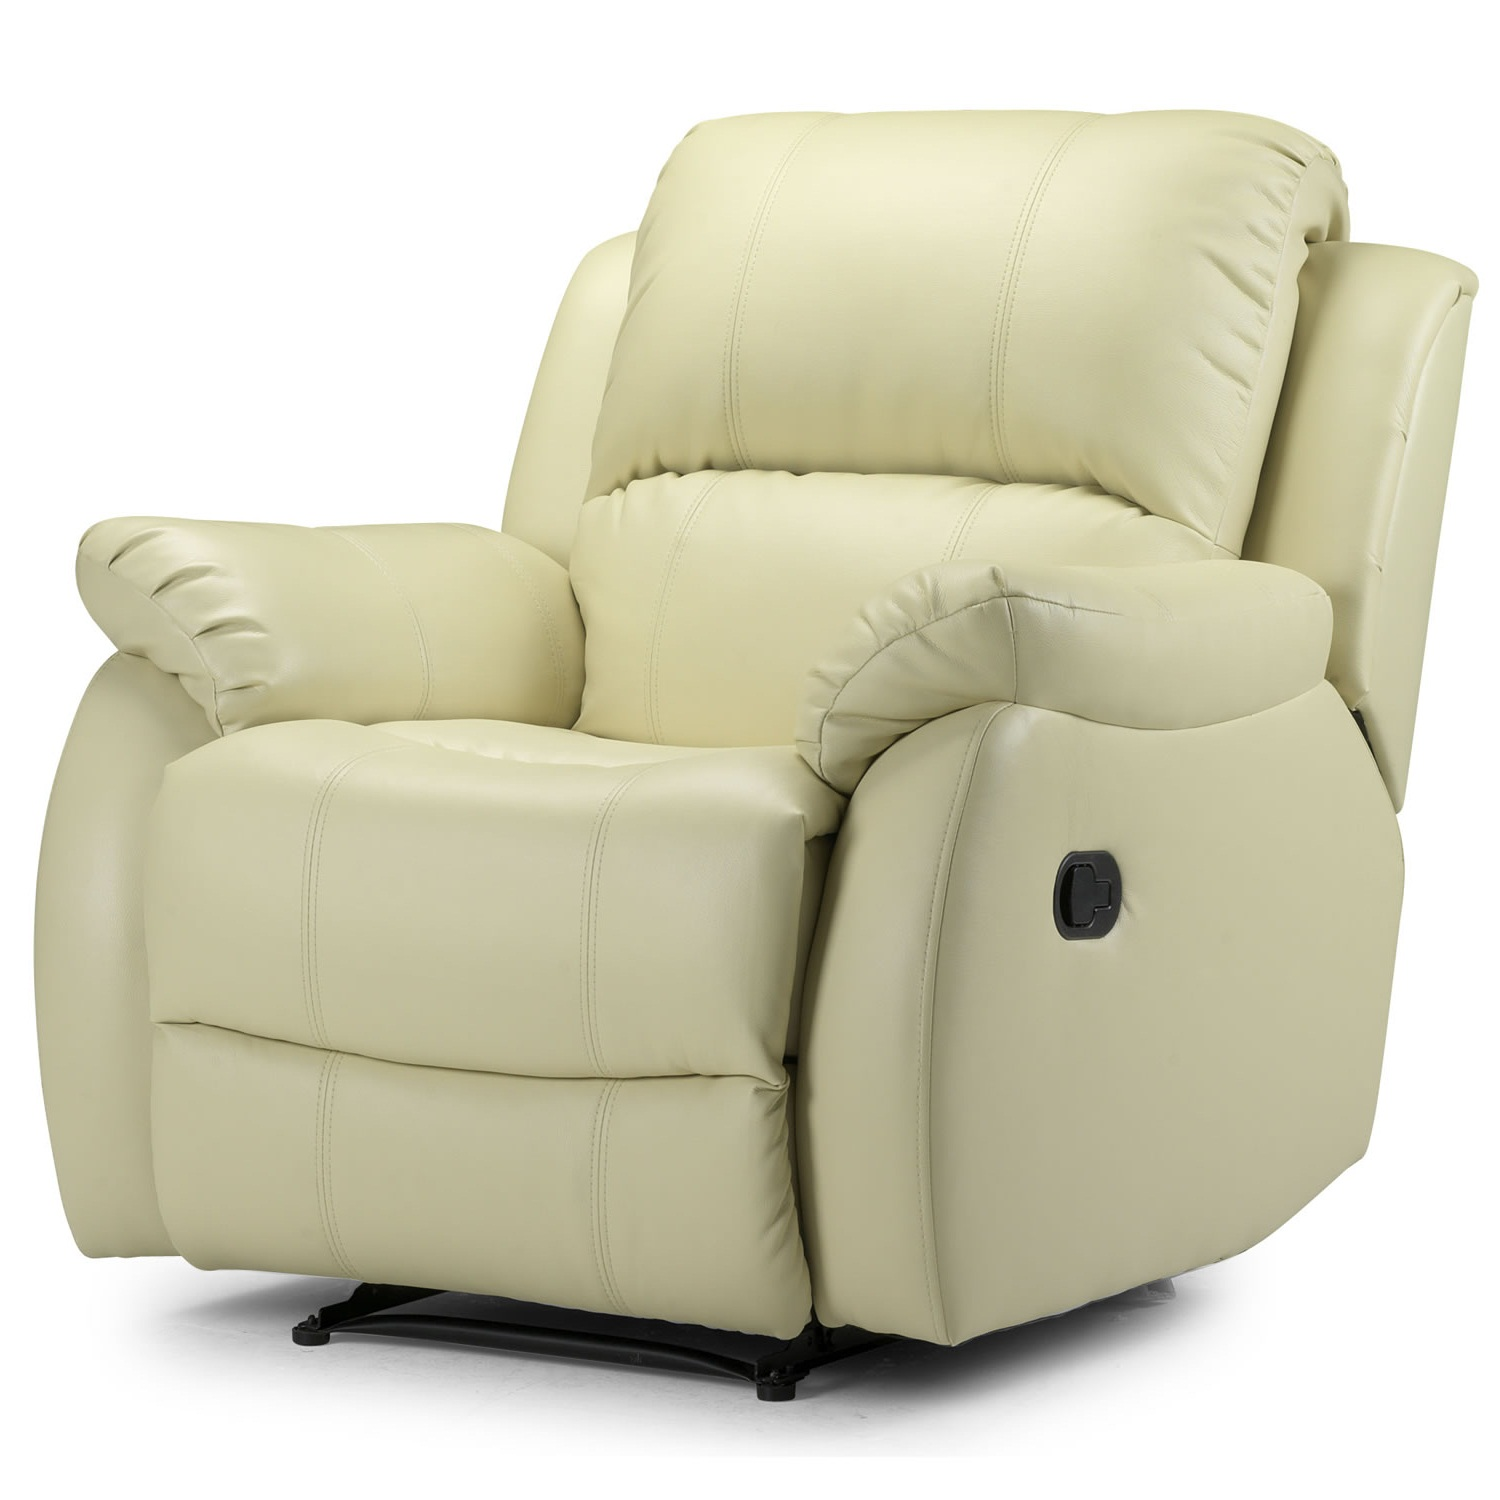 Cream leather recliner armchair photos 10